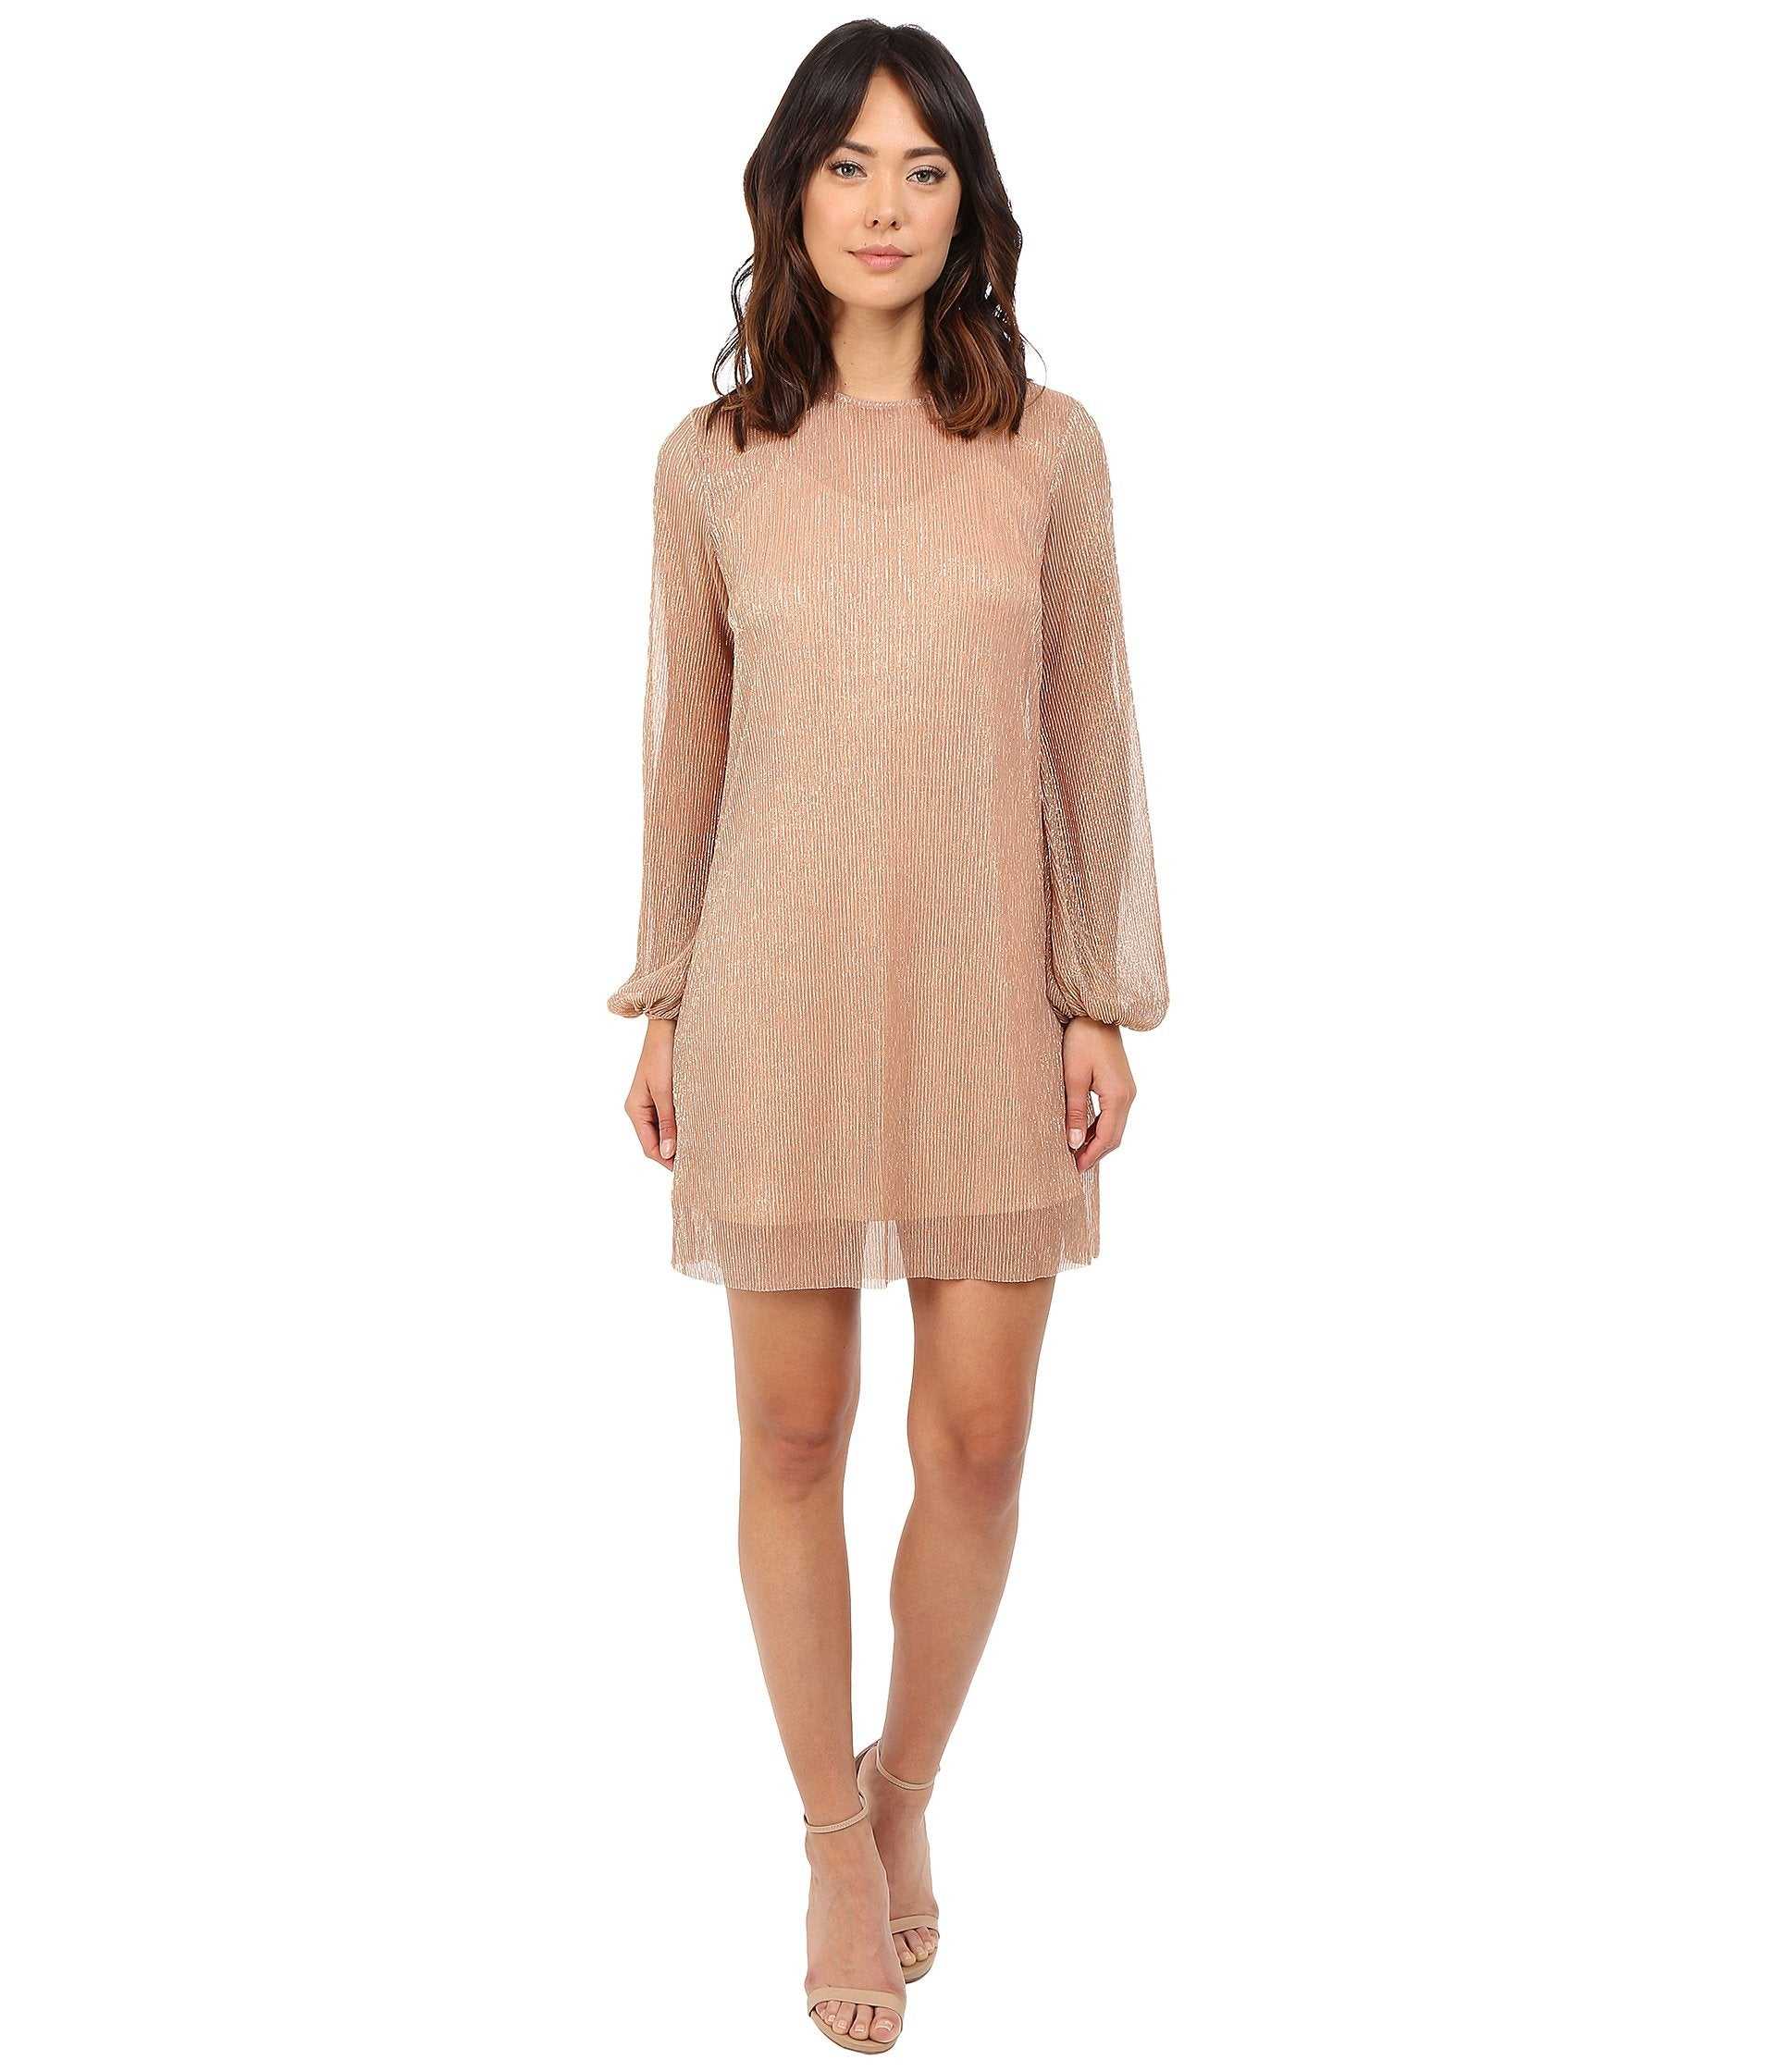 Fading Out Long Sleeve Mini Dress